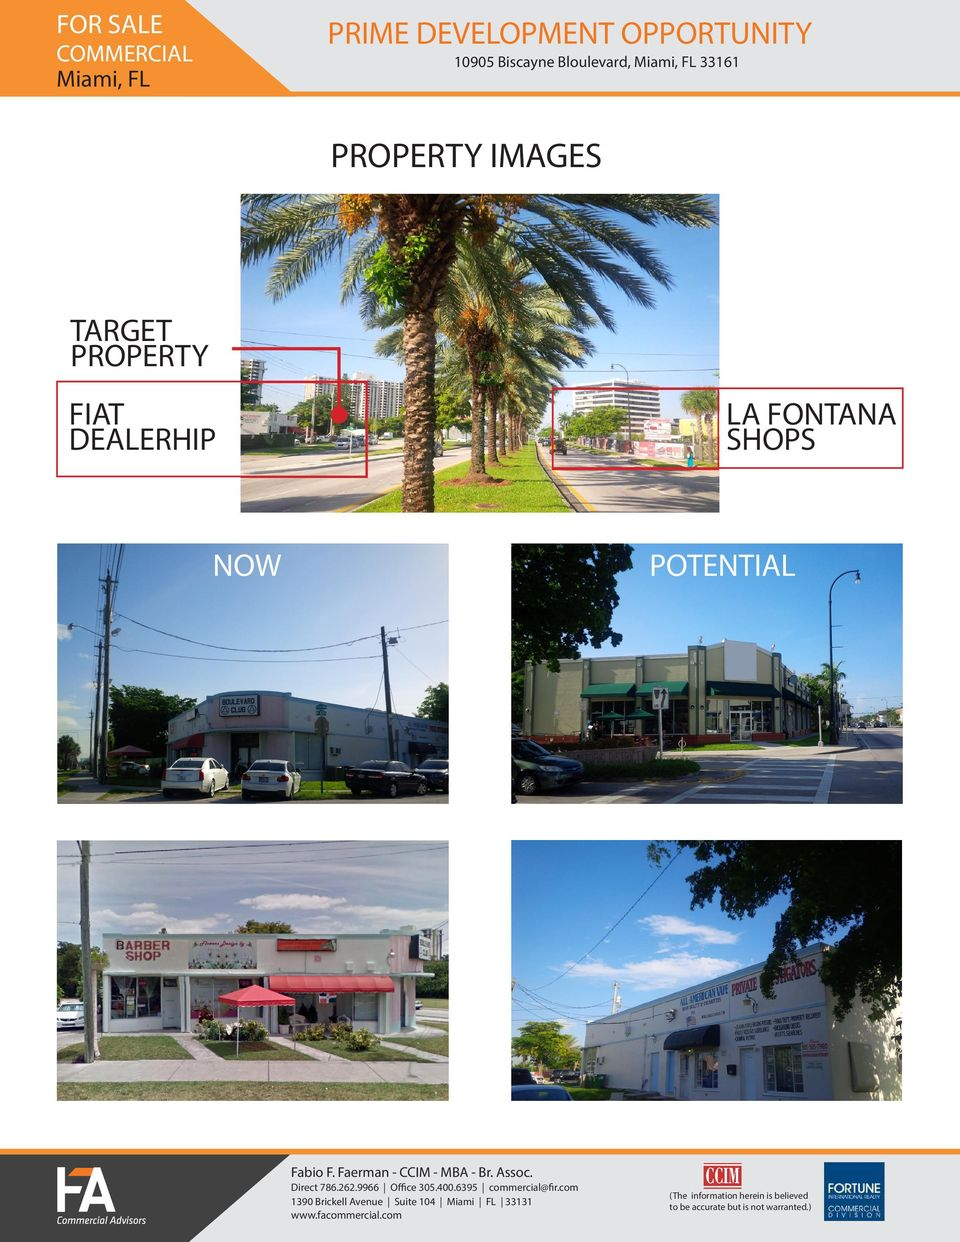 IMAGES TARGET PROPERTY FIAT